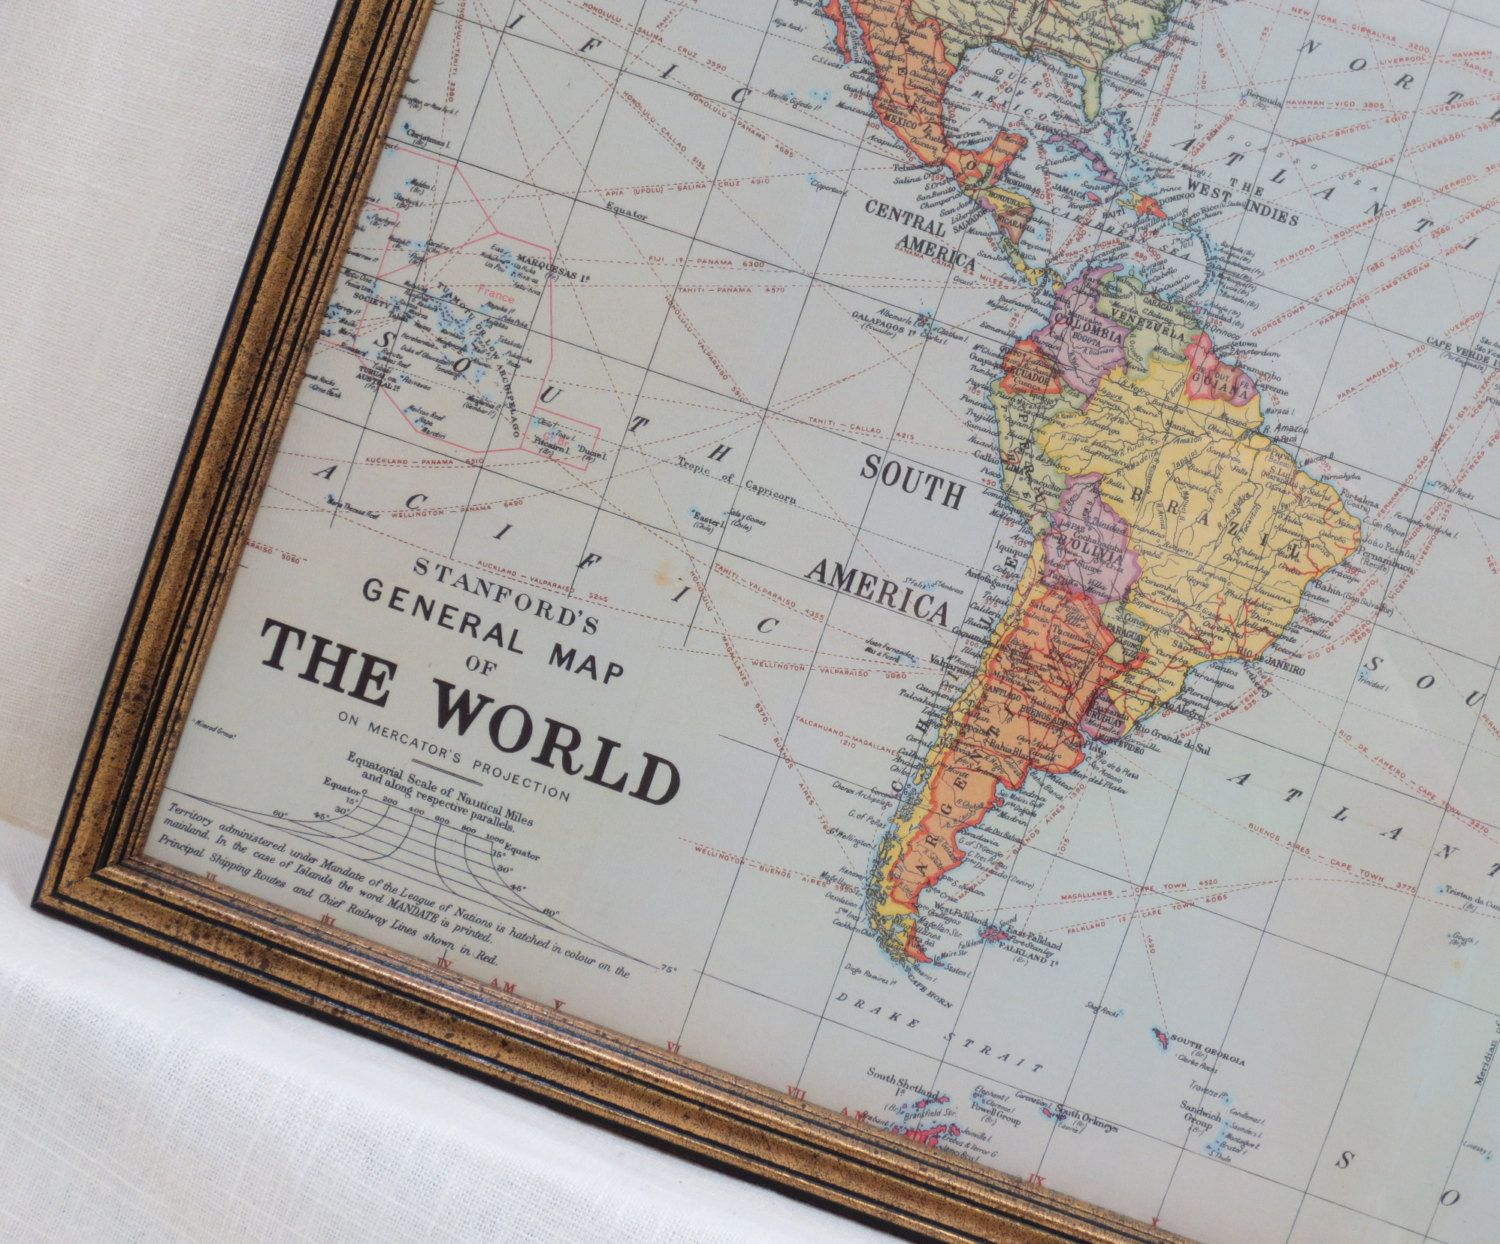 Wall decor large magnet board magnetic board dry erase board wall decor large magnet board magnetic board dry erase board framed bulletin board classic world map design includes magnets 9500 via etsy gumiabroncs Gallery